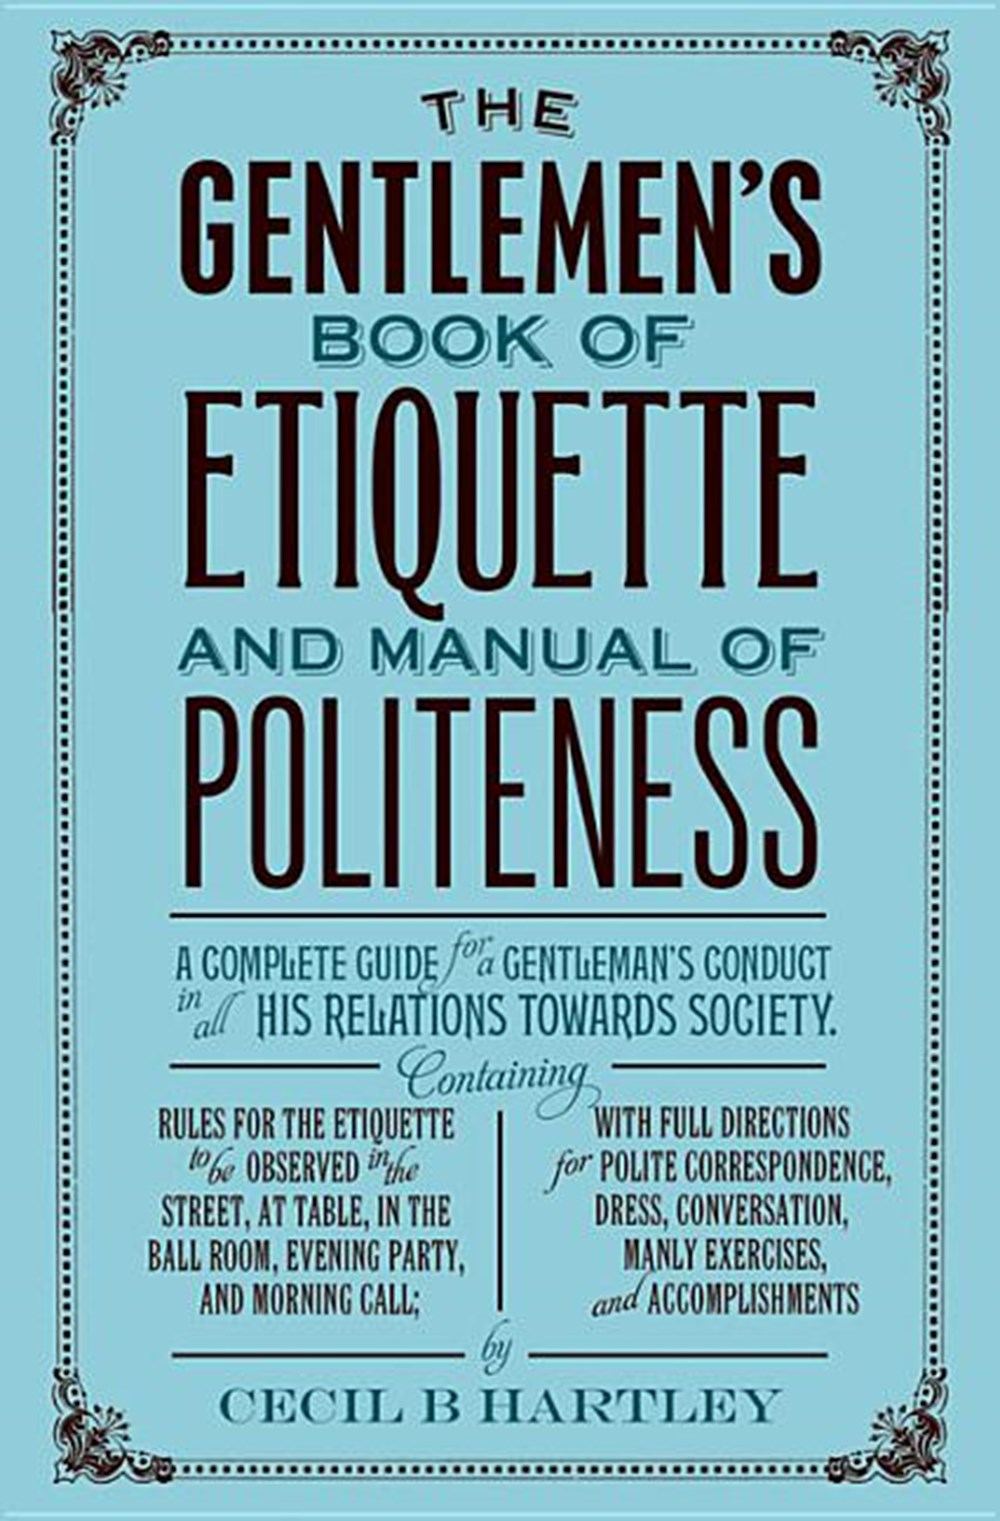 Gentleman's Book of Etiquette and Manual of Politeness